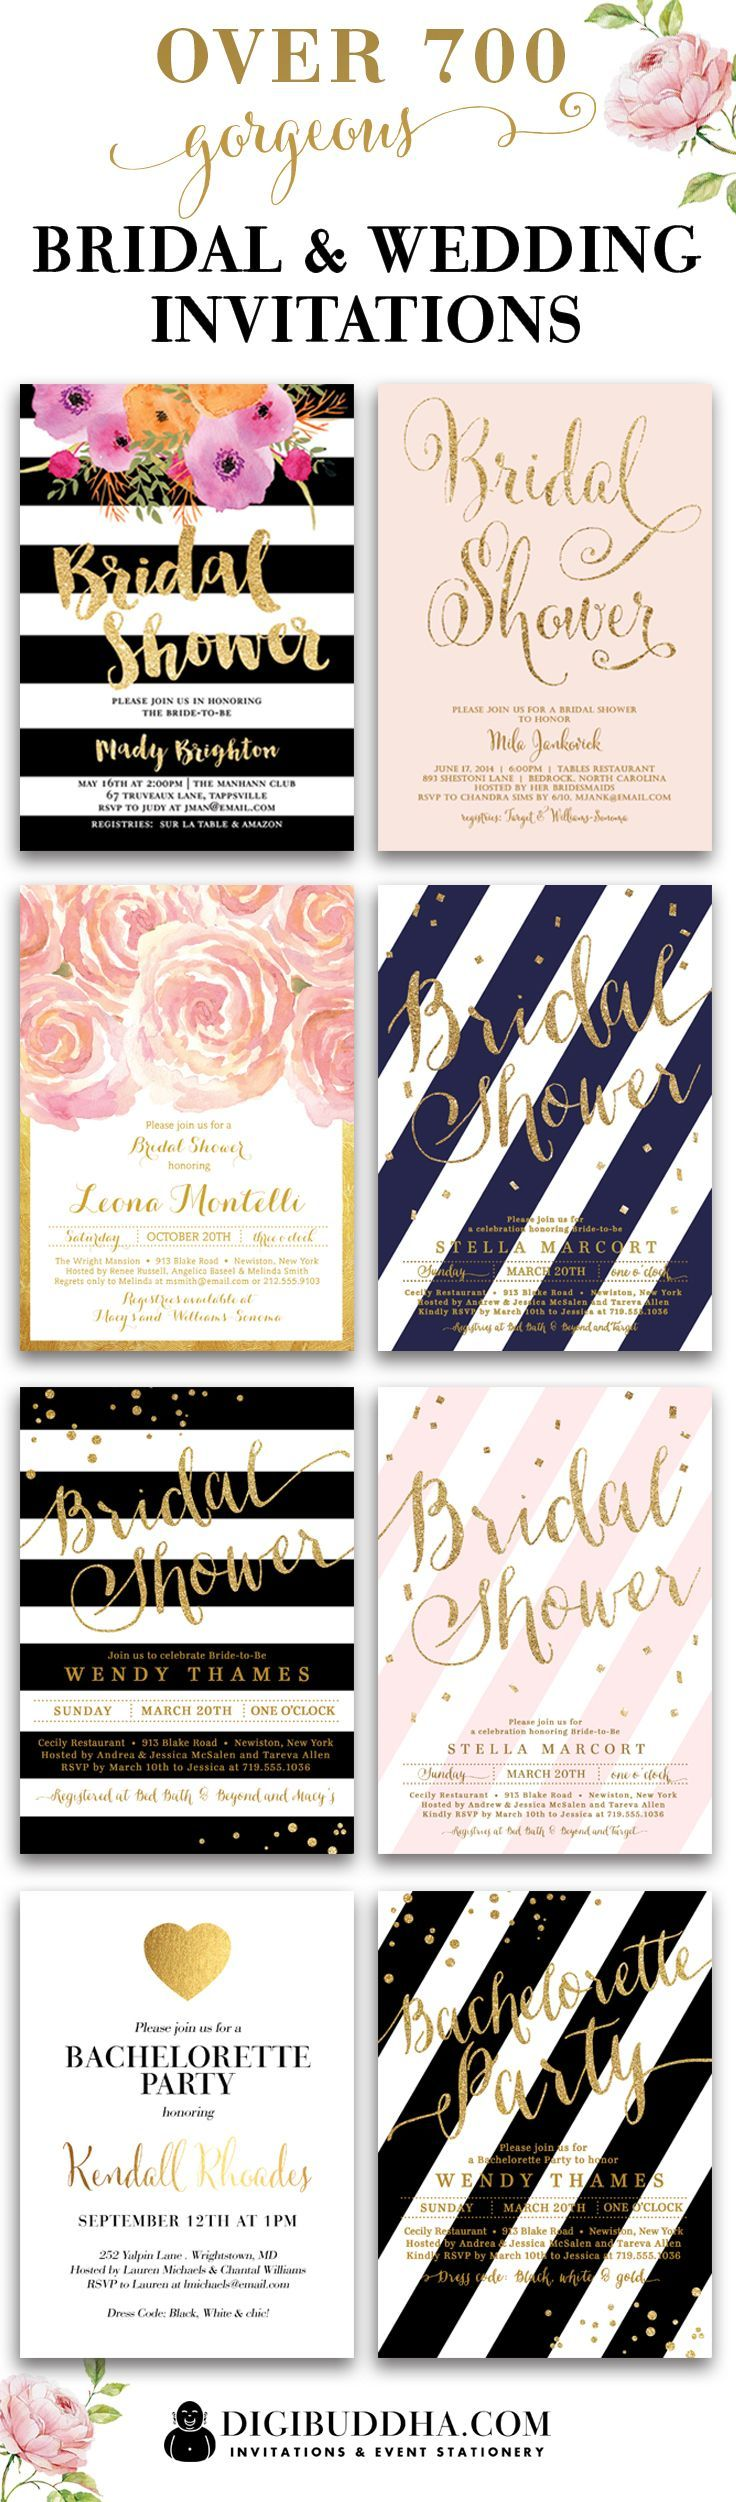 Over 700 gorgeous + original impressive bridal shower invitations and wedding invitations in styles ranging from modern to classic to elegant, glam, rustic and even boho chic. In any color and just about any fonts you can imagine. Plus add matching envelope liners, address labels and coordinating color envelopes to complete the look. Your guests will be talking about your invitations long after the event. Wow them with beautiful invitations. Only at digibuddha.com.